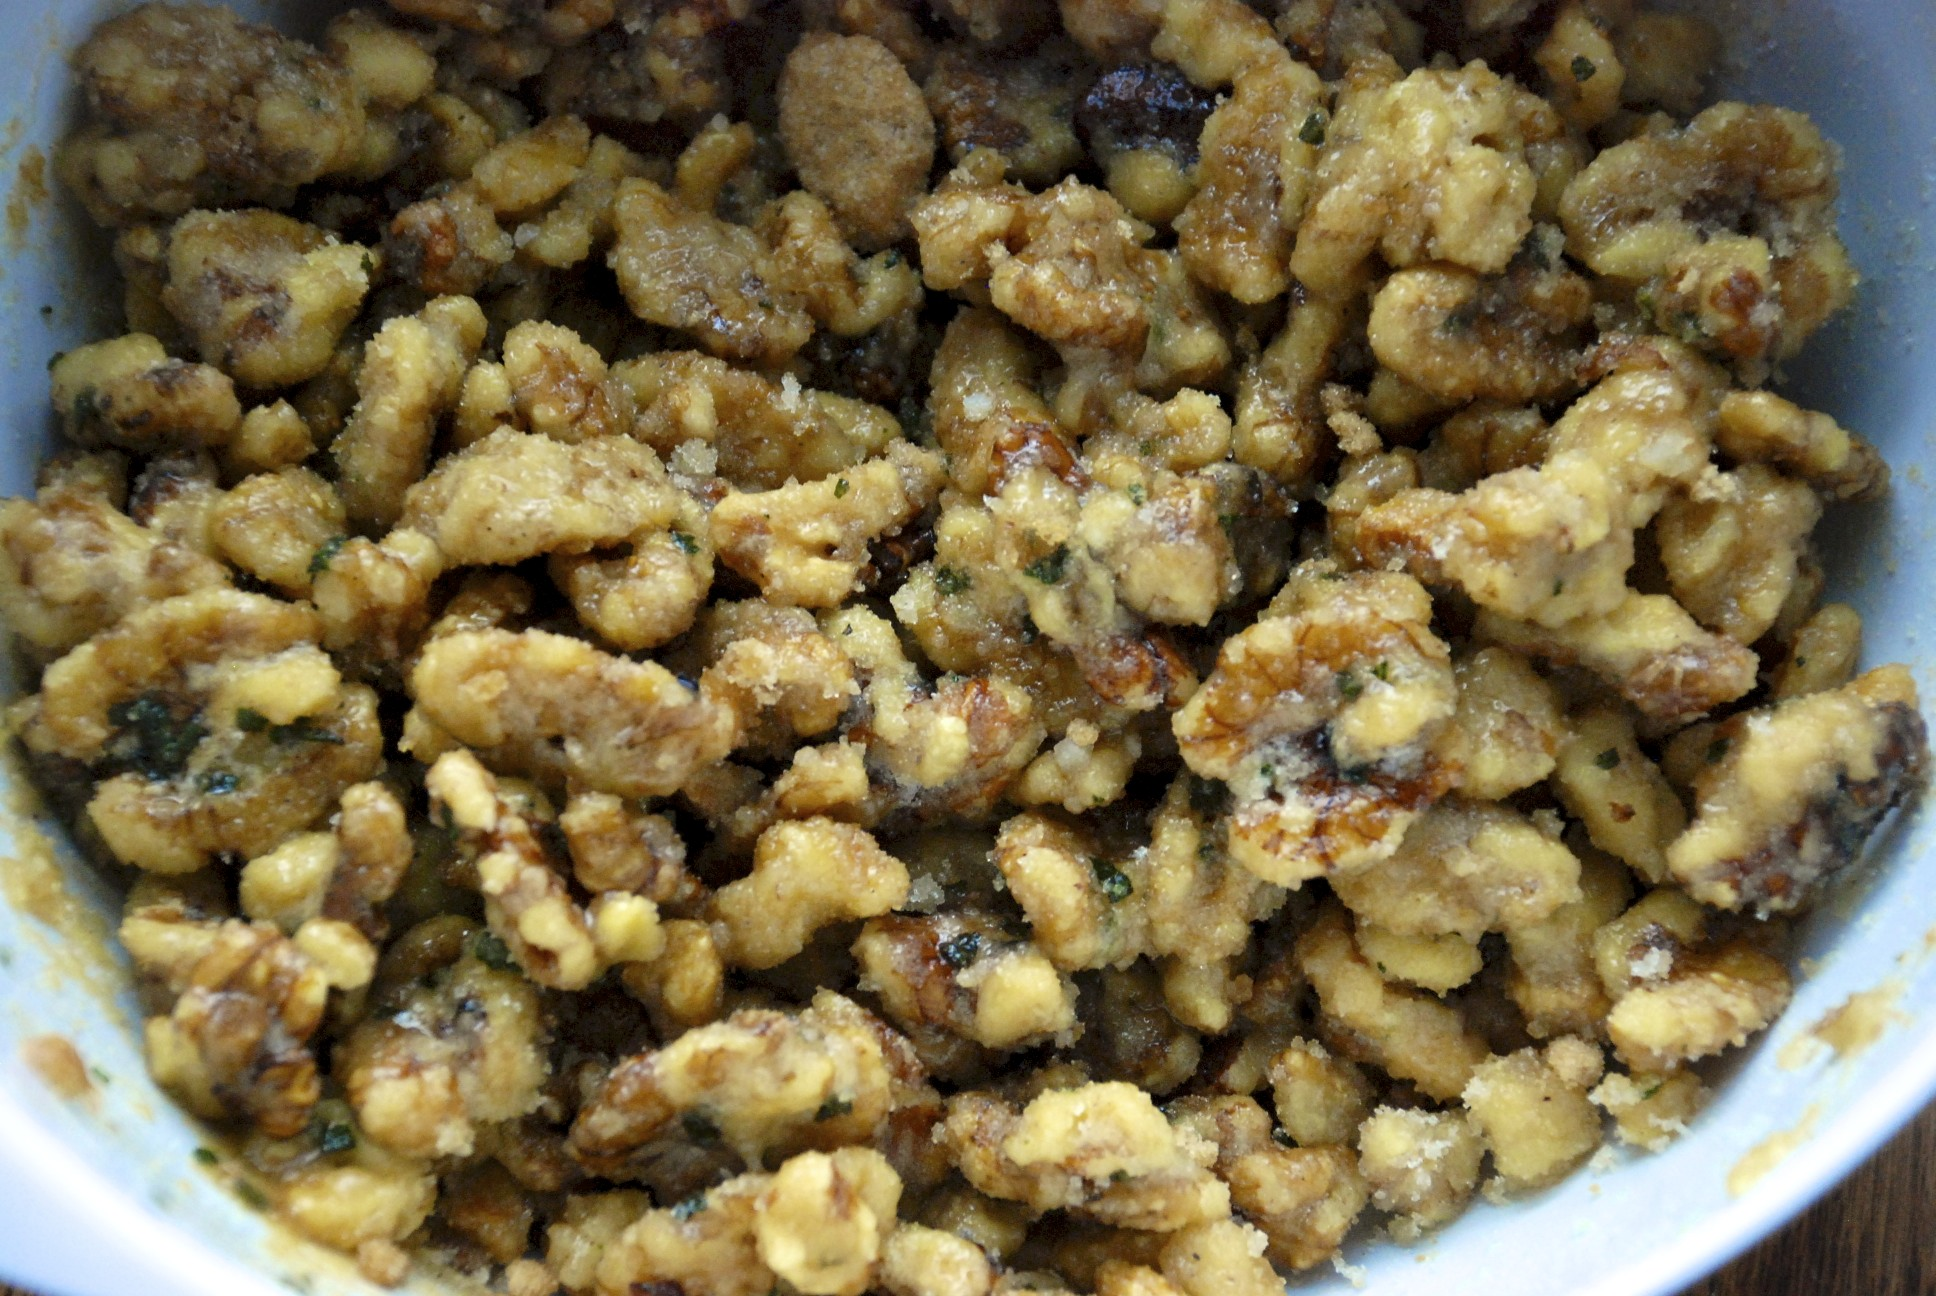 ... sage and walnuts sage candied walnuts recipe on food52 sage candied